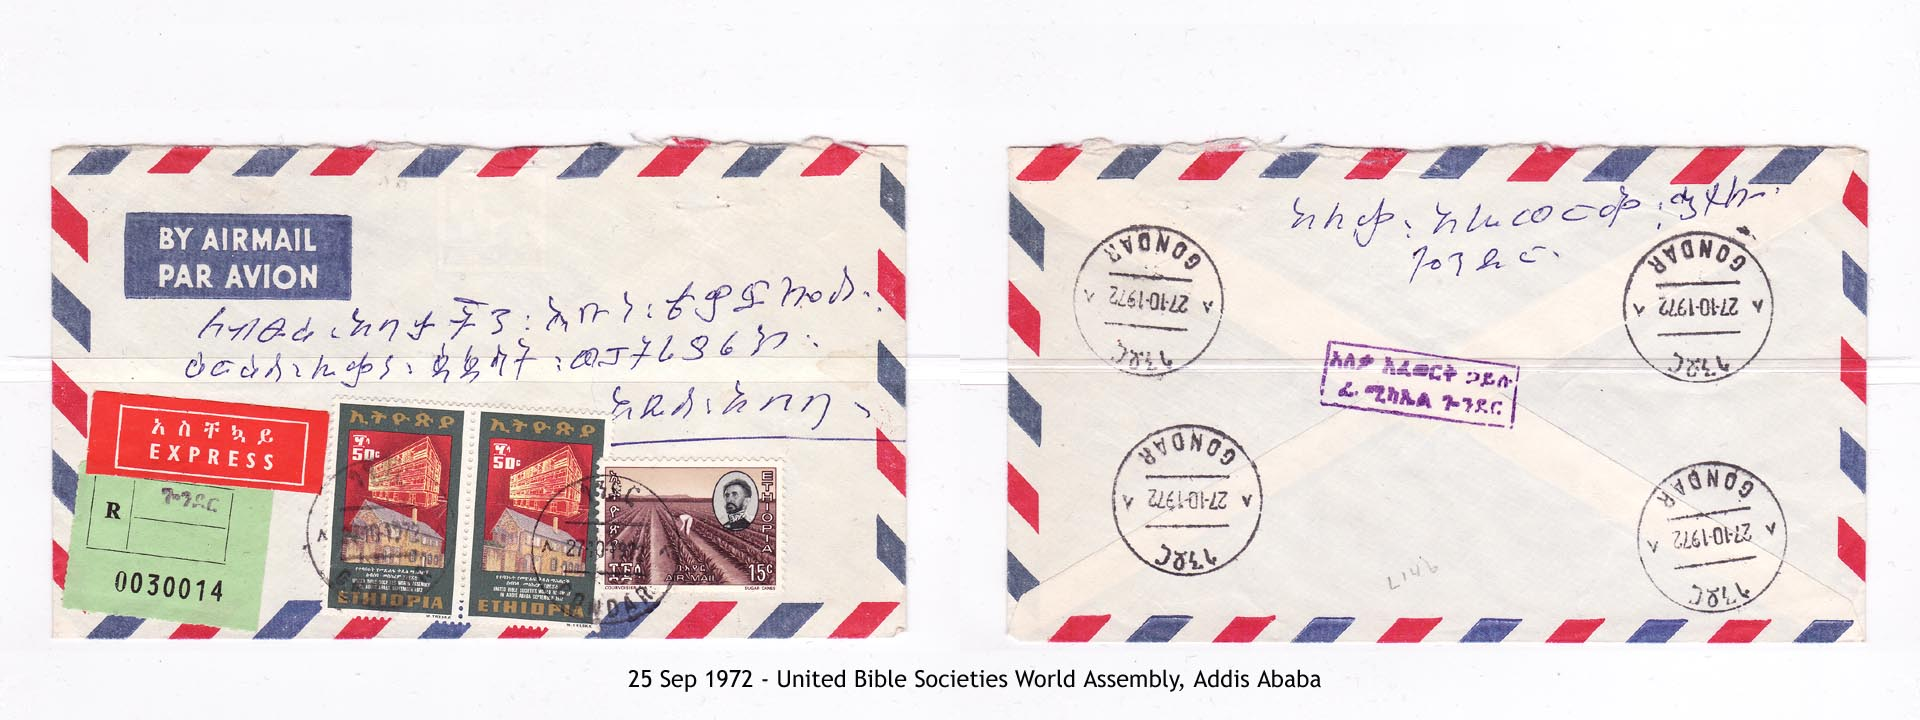 19720925 - United Bible Societies World Assembly, Addis Ababa